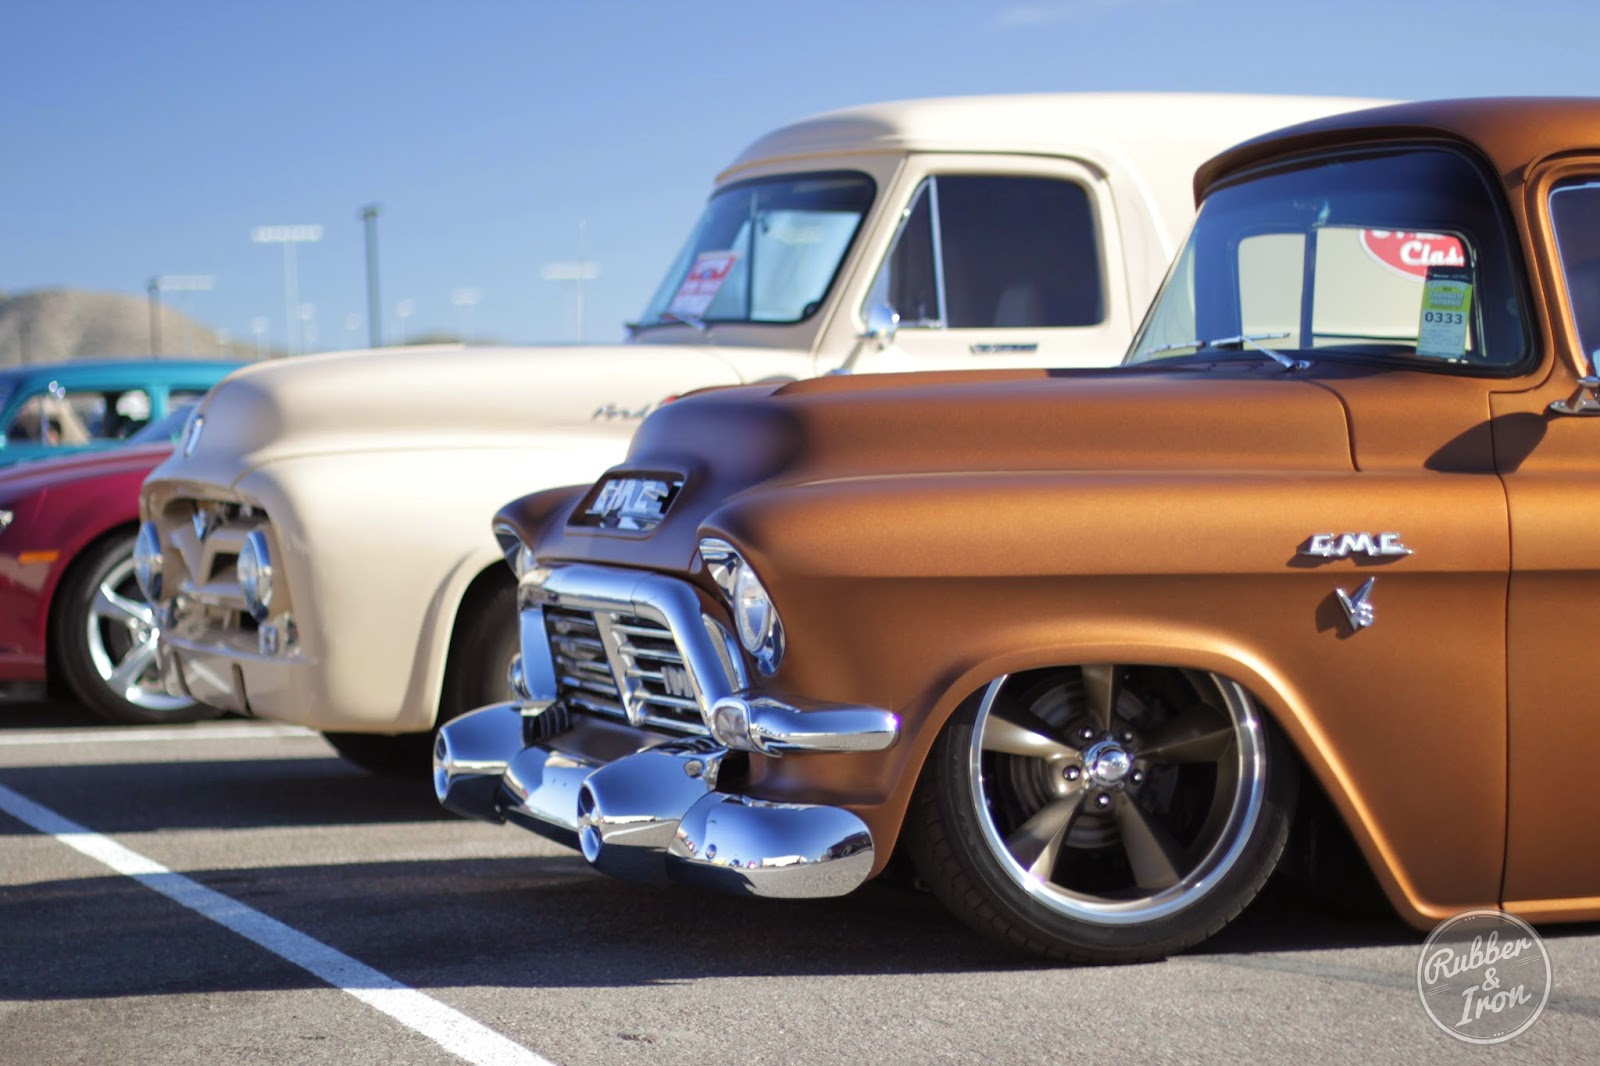 When Is Good Guys Car Show Scottsdale Az 2014 Autos Weblog